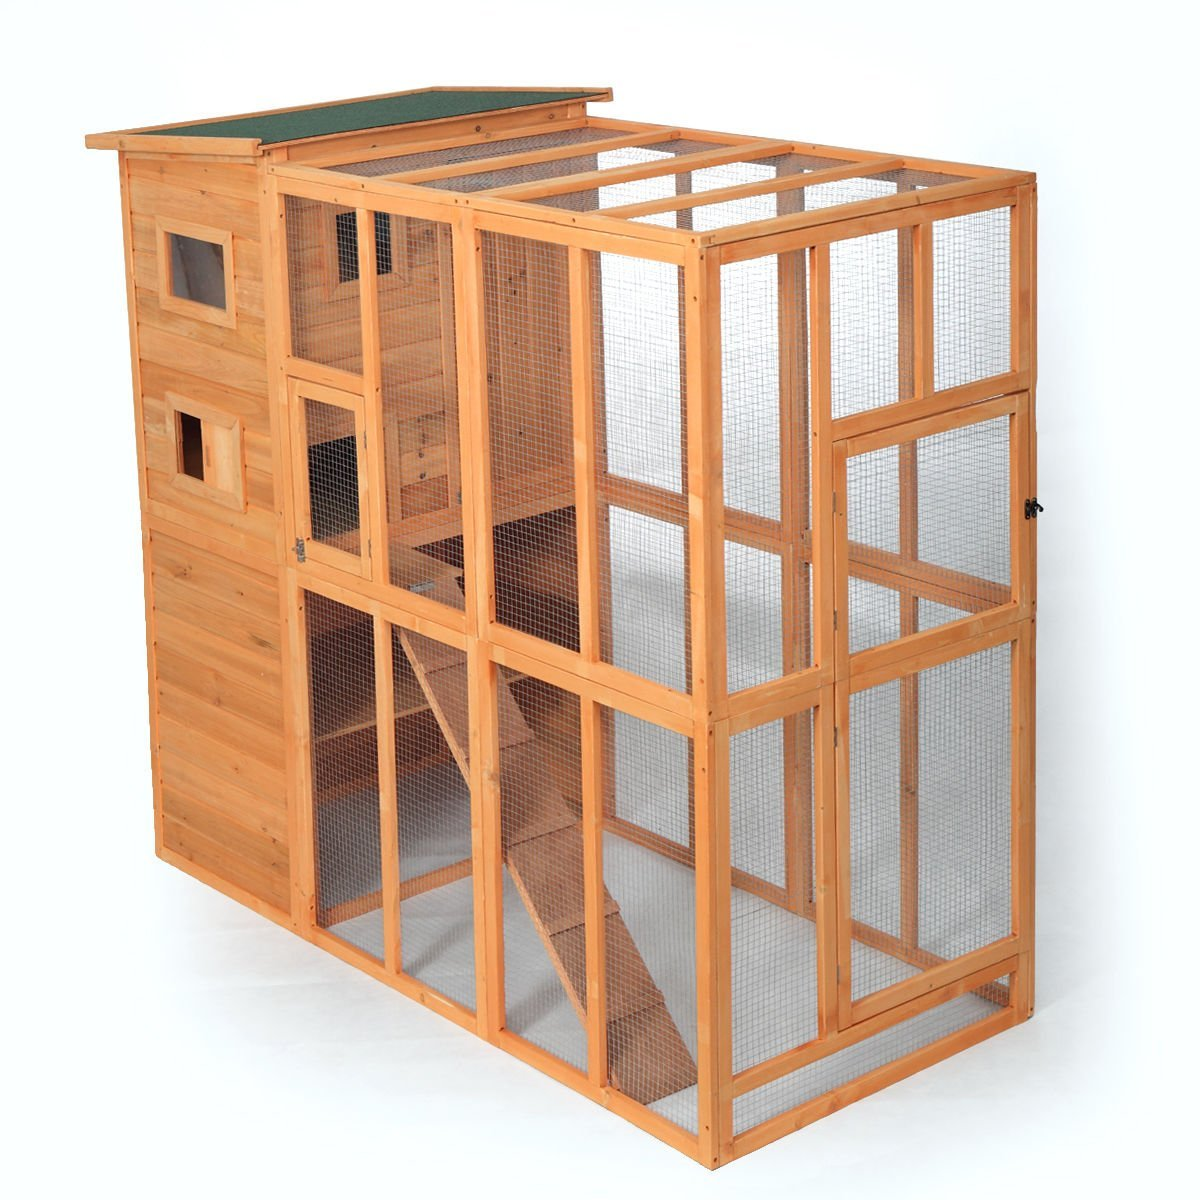 Jaxpety Cat Houses Cage For Outdoor Cats Enclosure Run Shelter Wooden Pet Housing